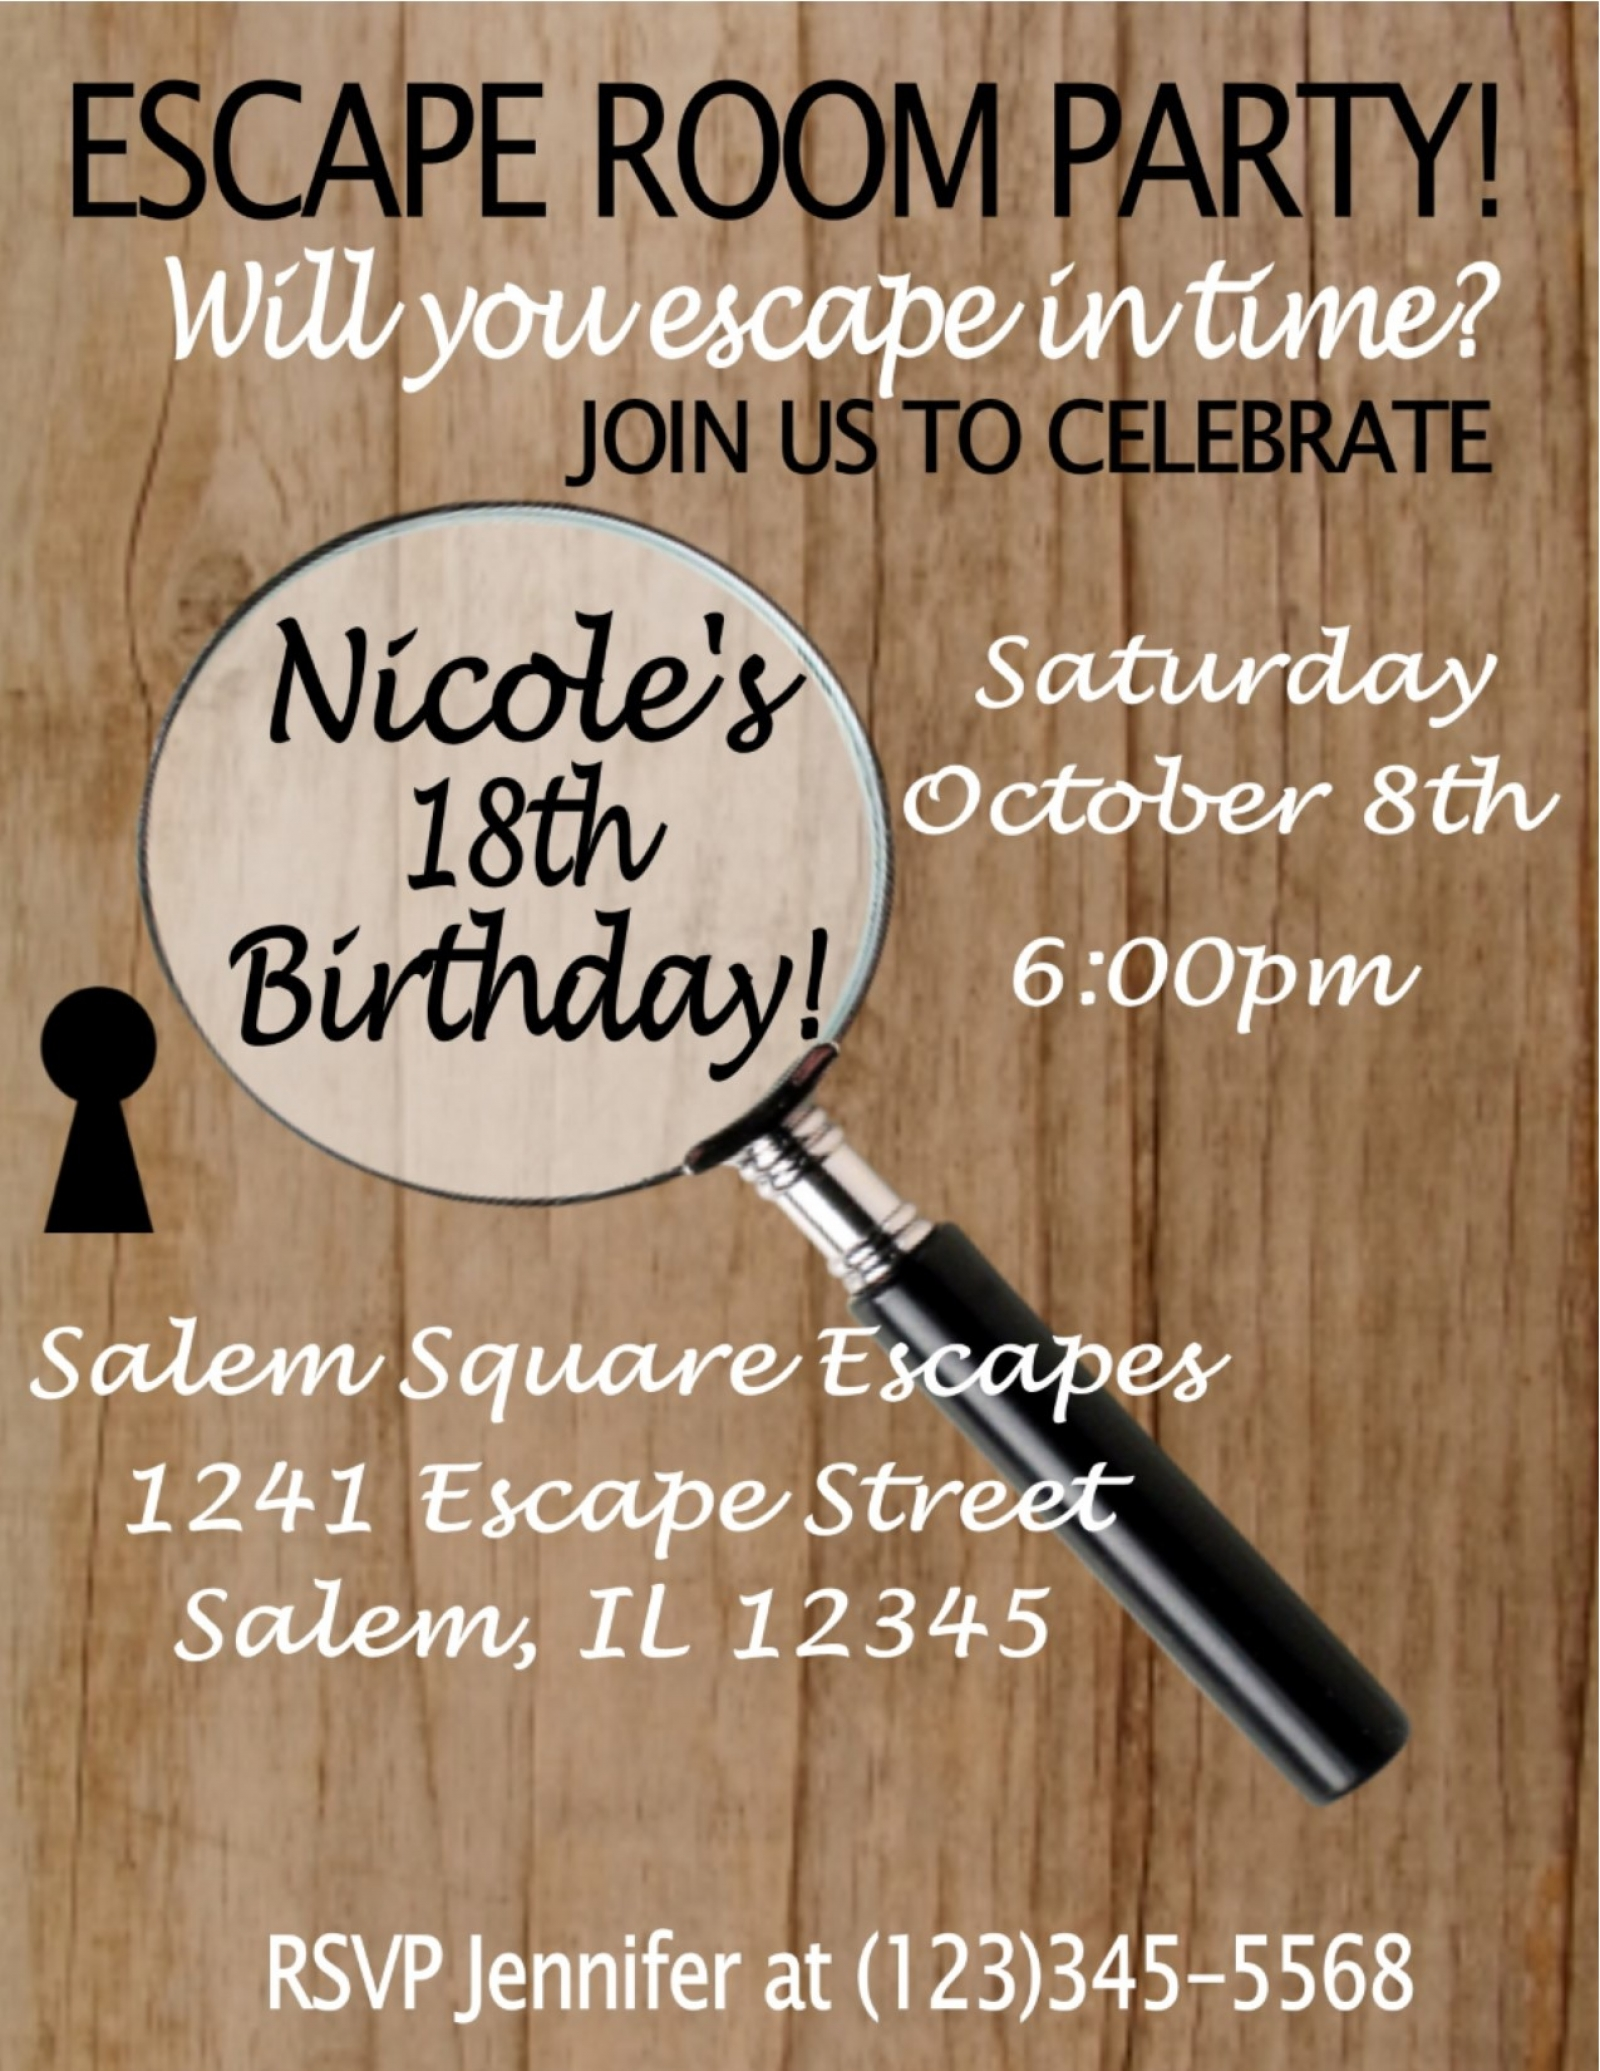 Escape room party invitation sweetdesignsbyregan for Escape room party